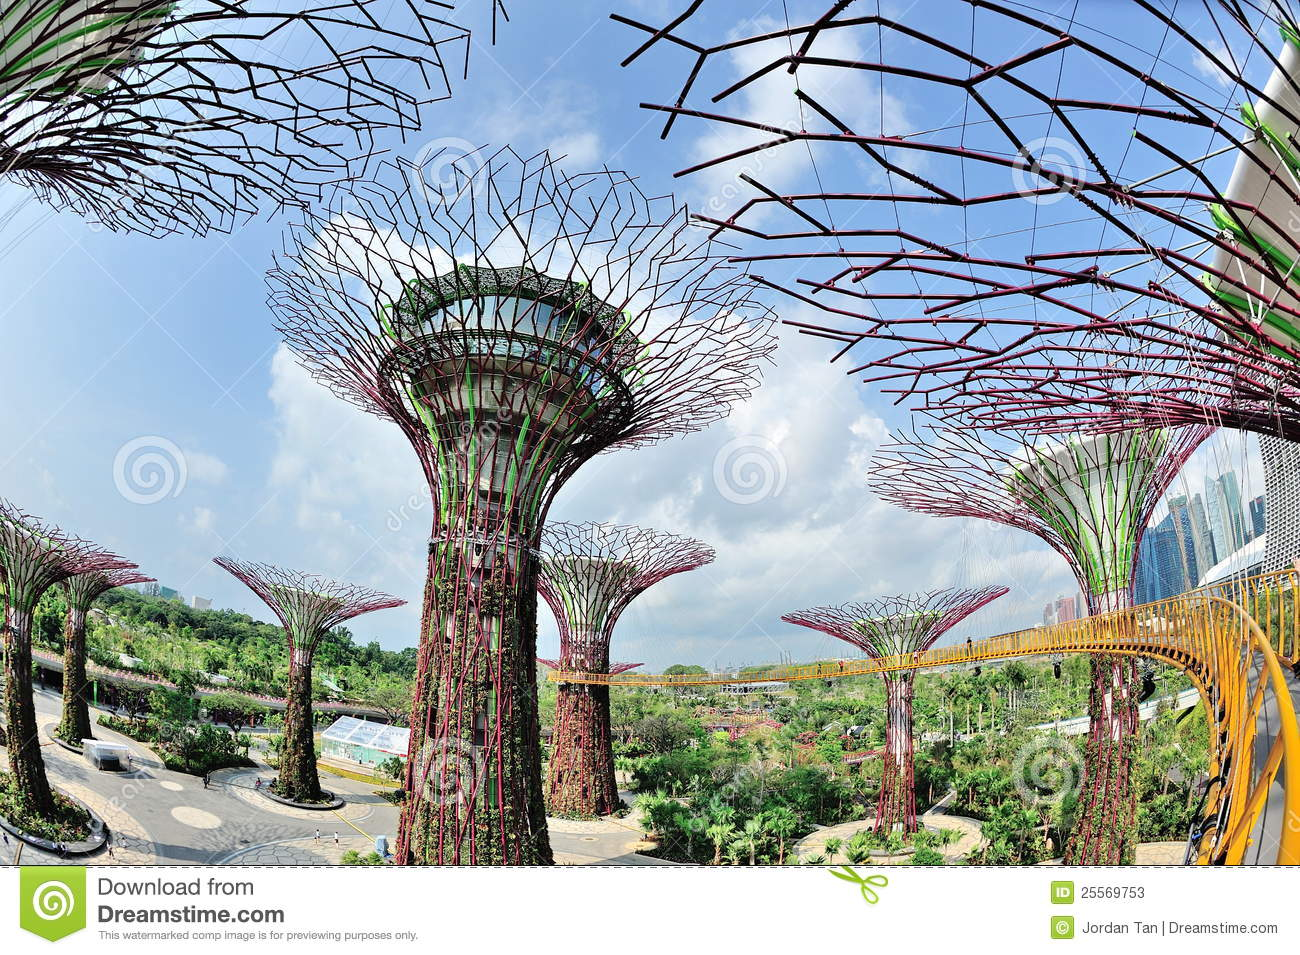 OCBC Skyway And Super Trees At Gardens By The Bay Stock Photos.